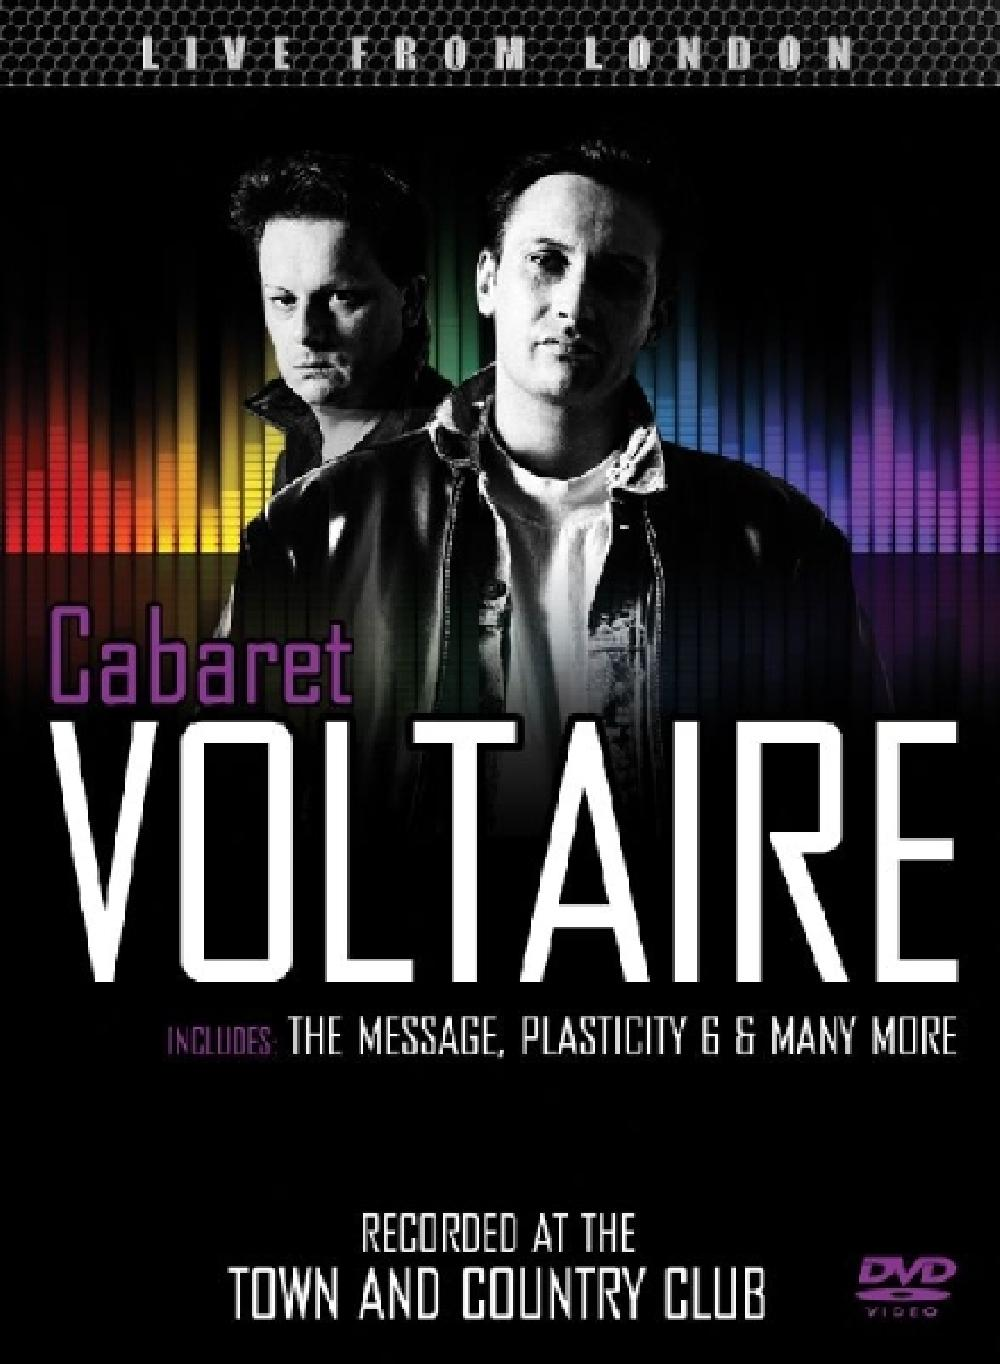 CABARET VOLTAIRE - LIVE FROM LONDON (nieuw) - DVD